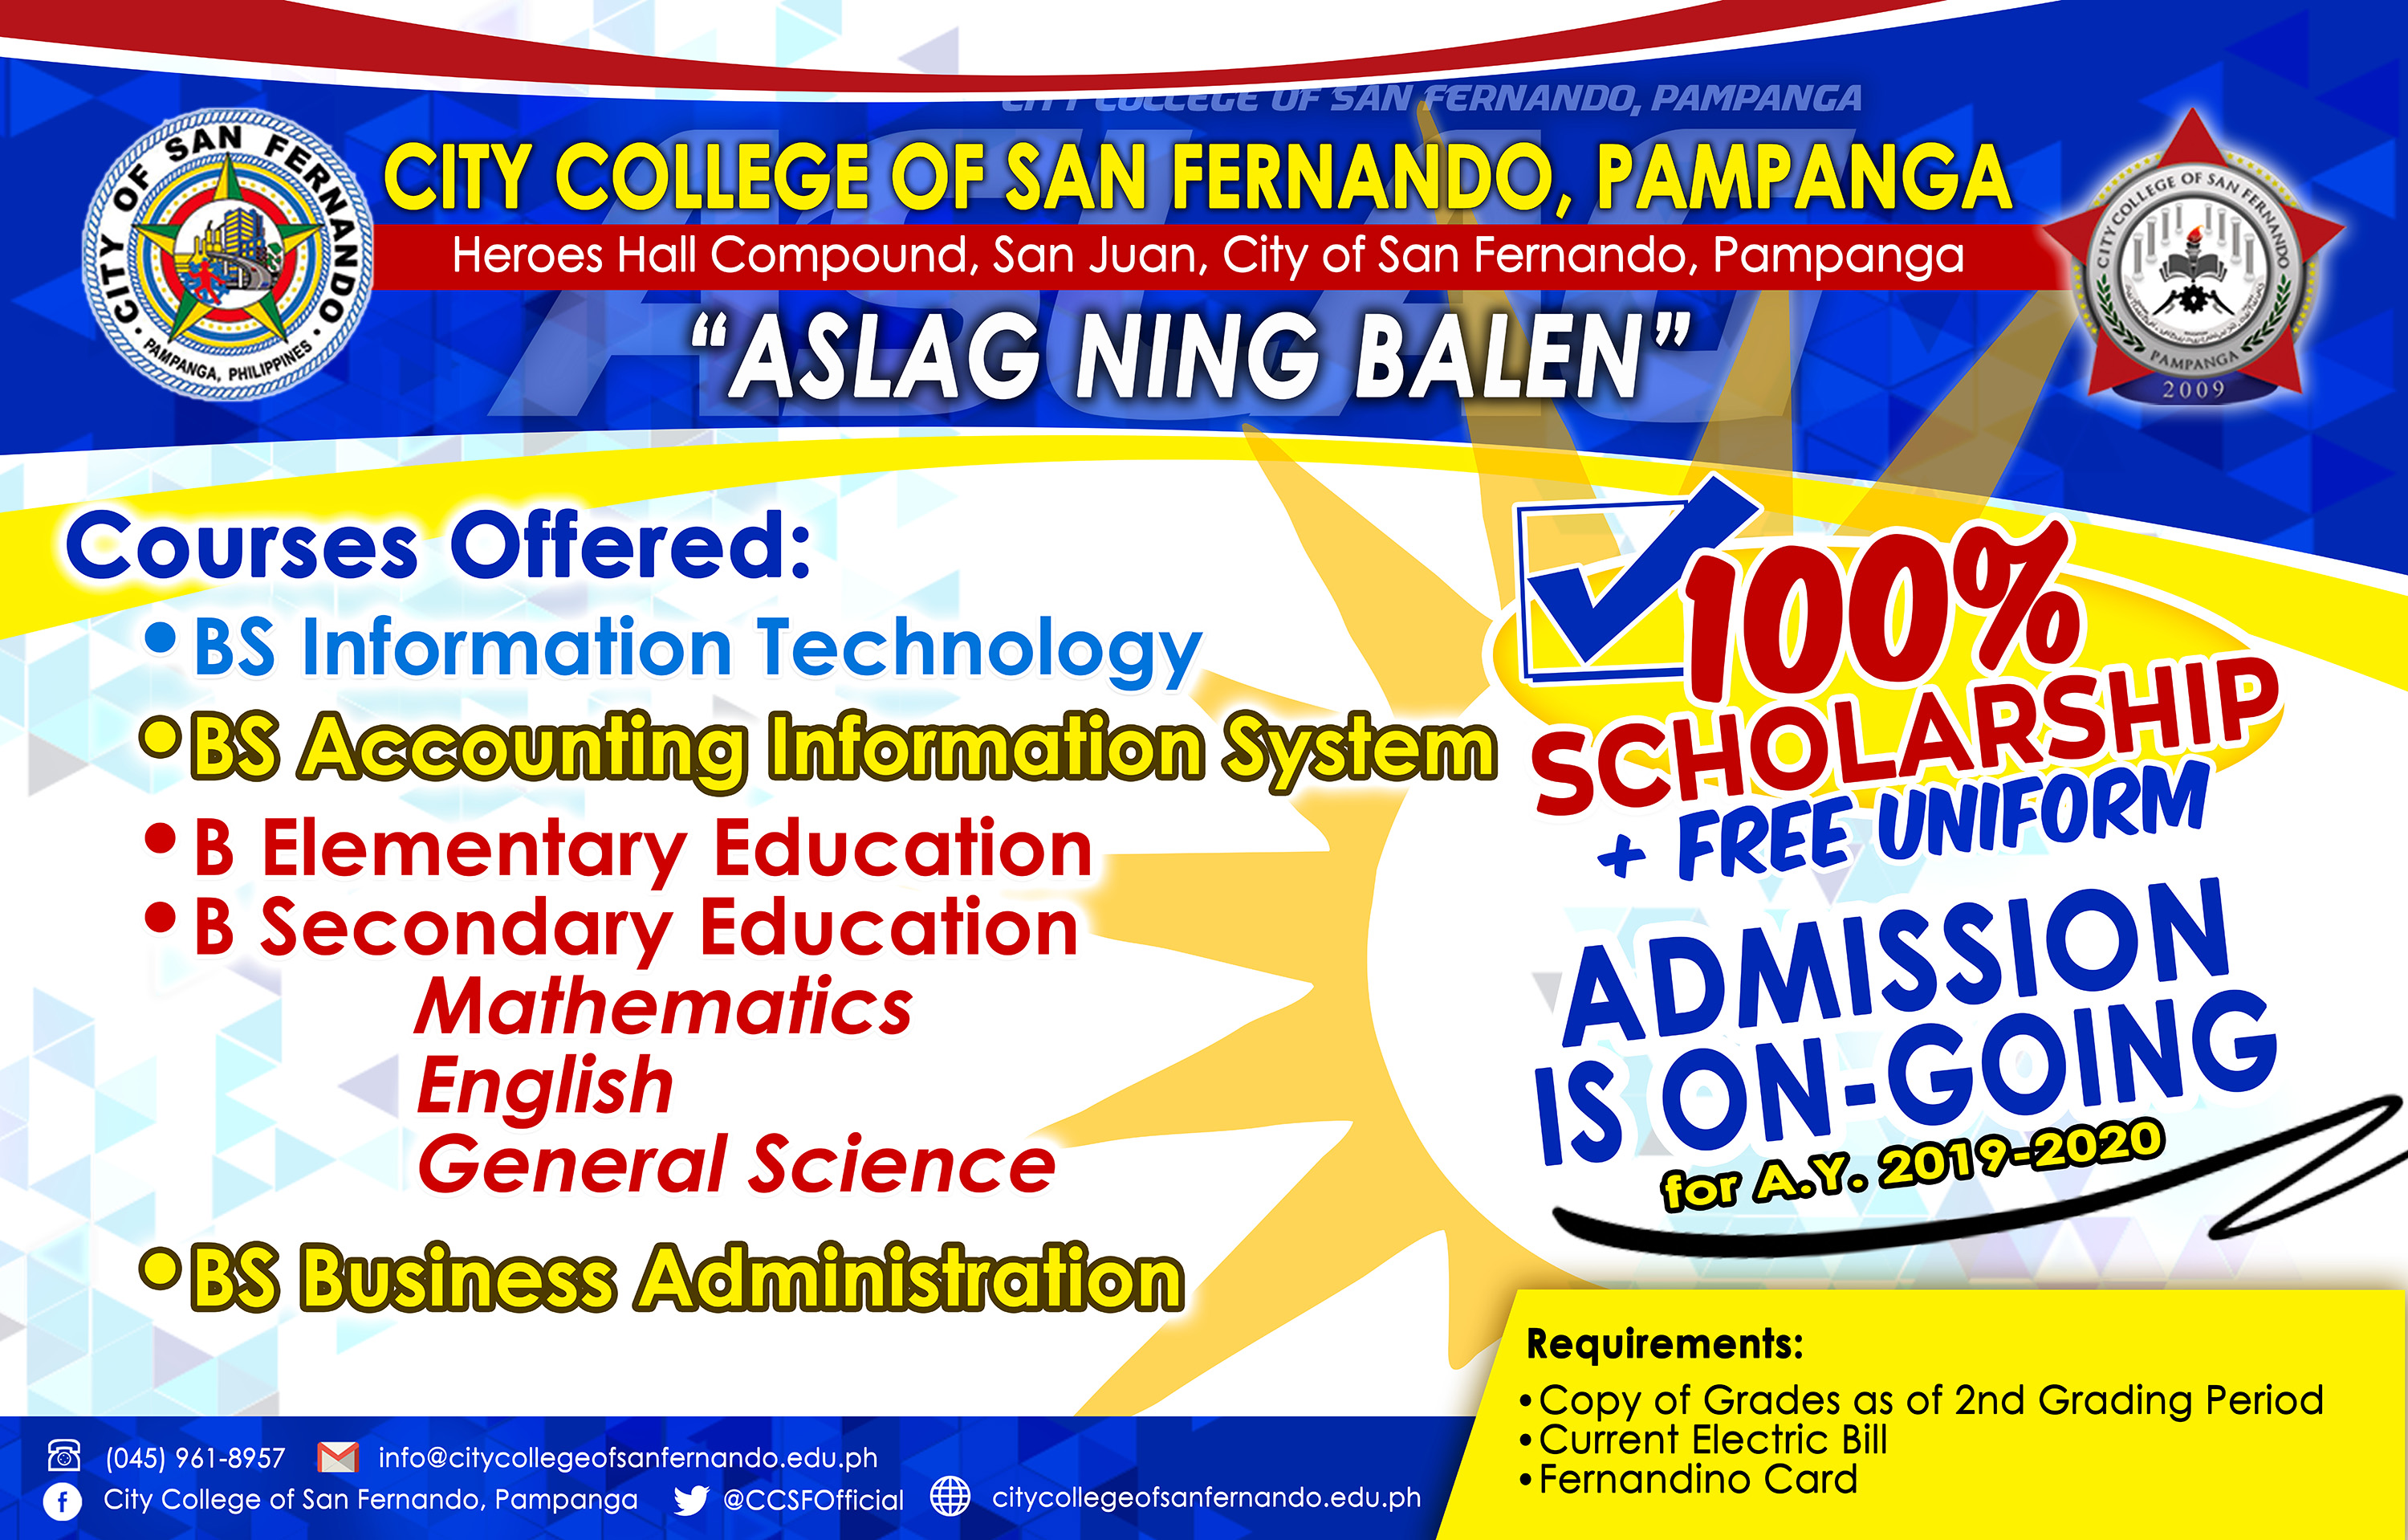 ADMISSION IS ON-GOING for 2019 - 2020